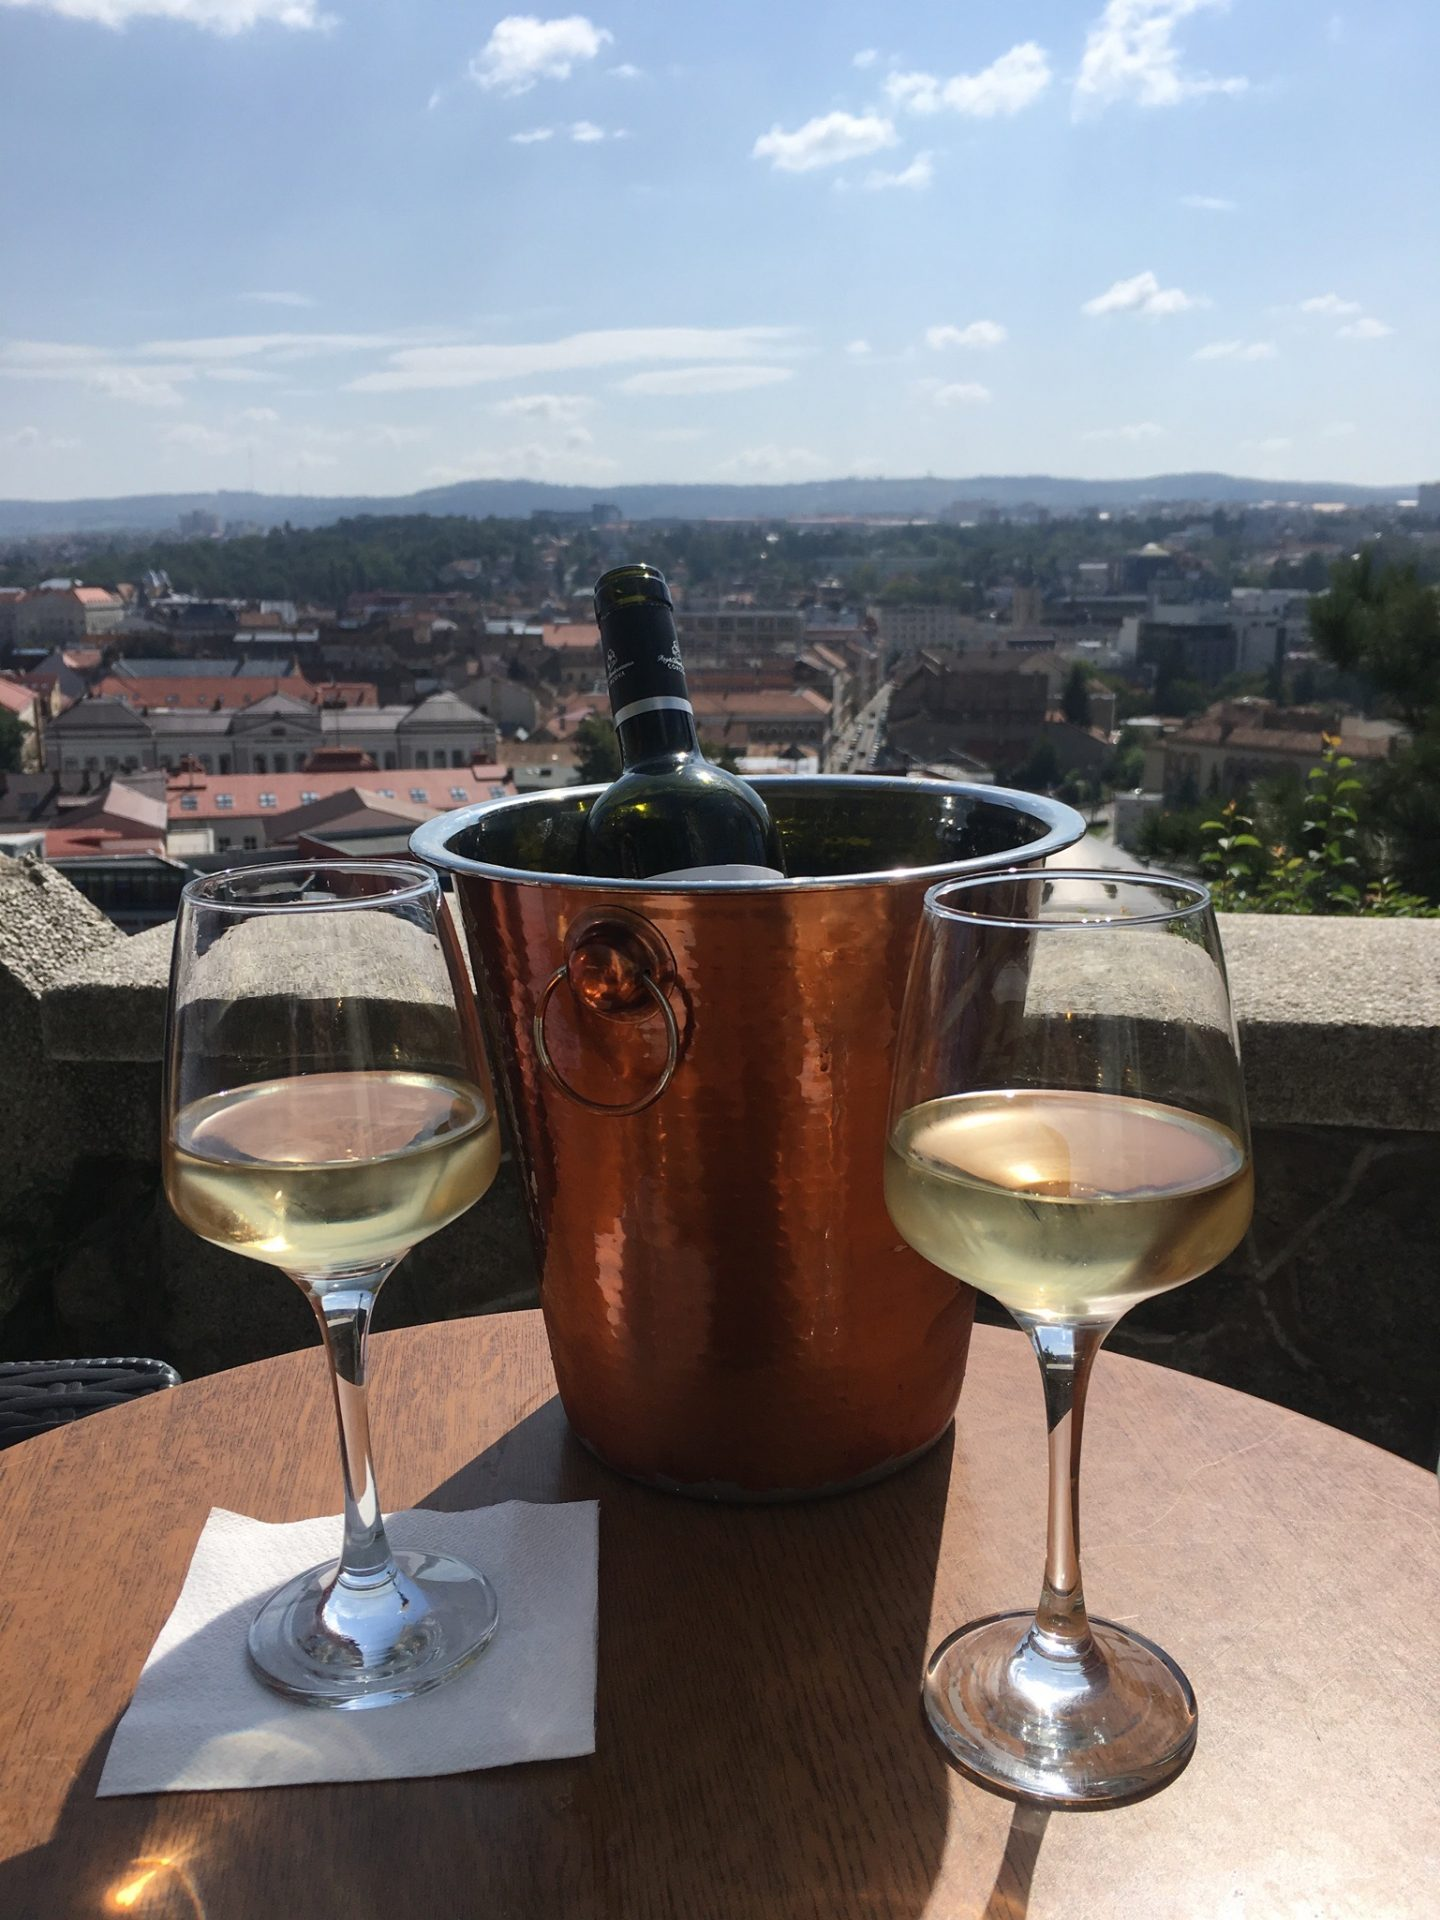 cluj napoca things to do: bottle of wine and two glasses overlooking the city from centurian hill